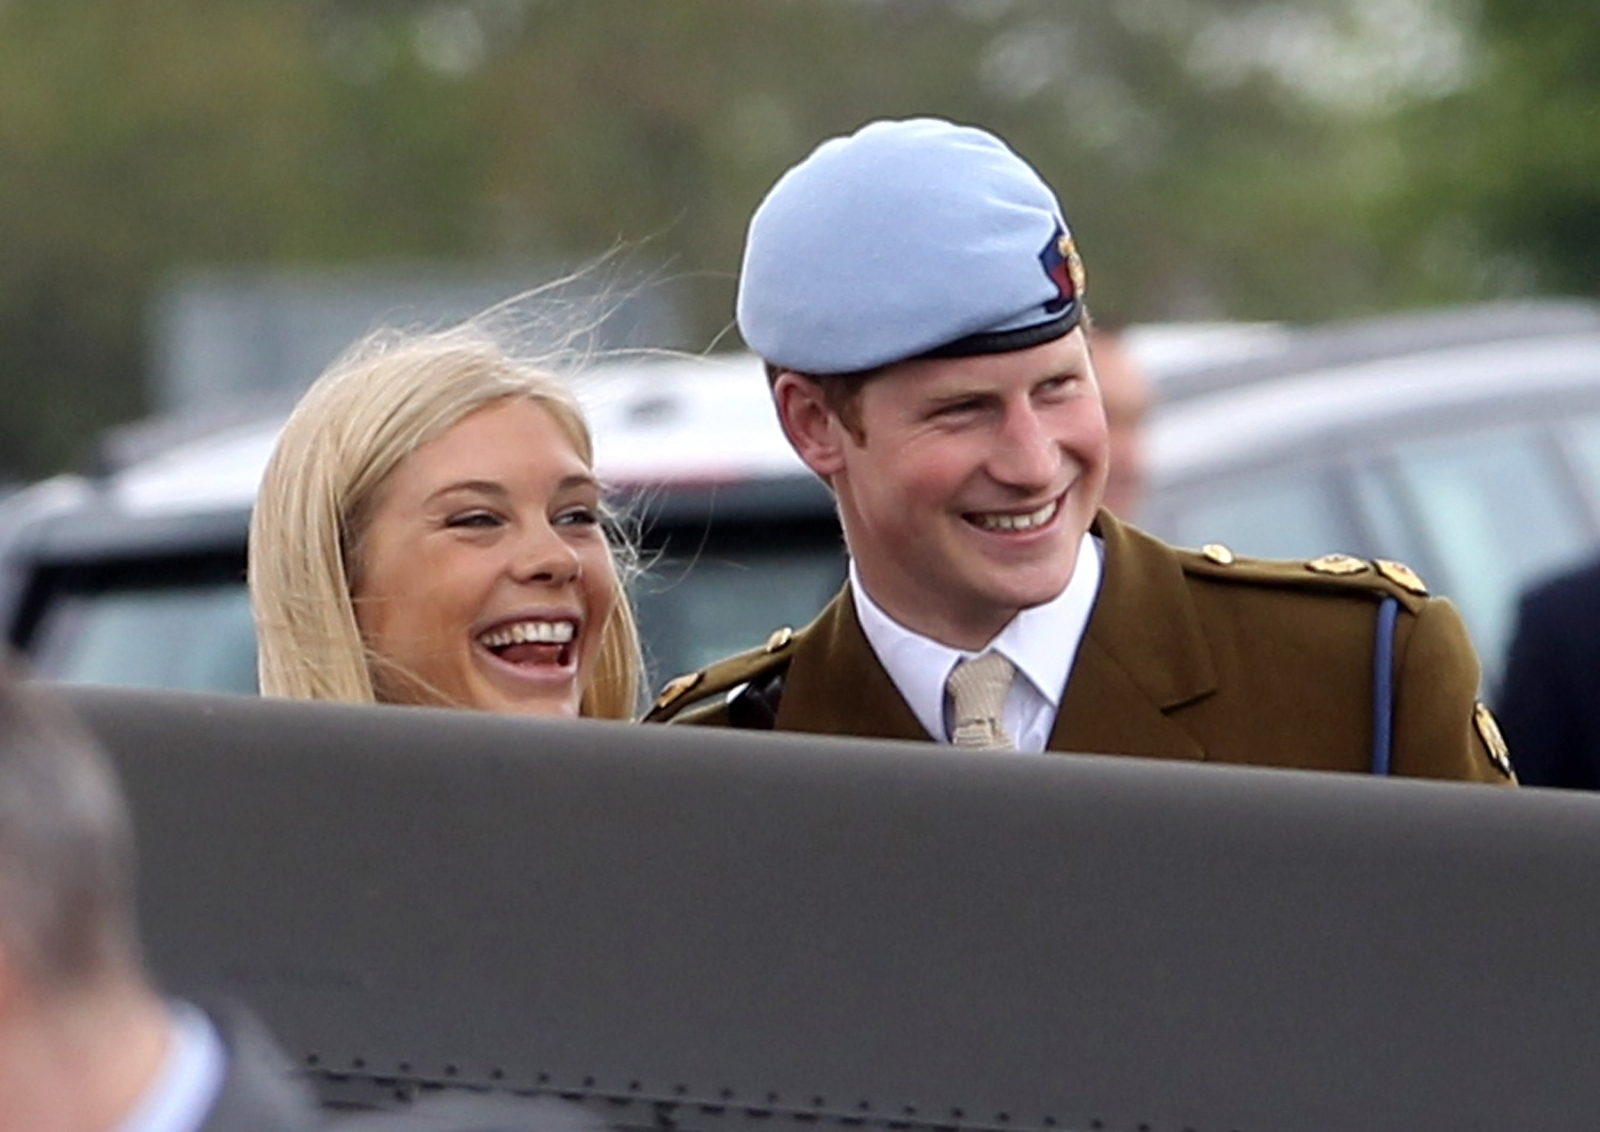 Chelsea Davy and Prince Harry